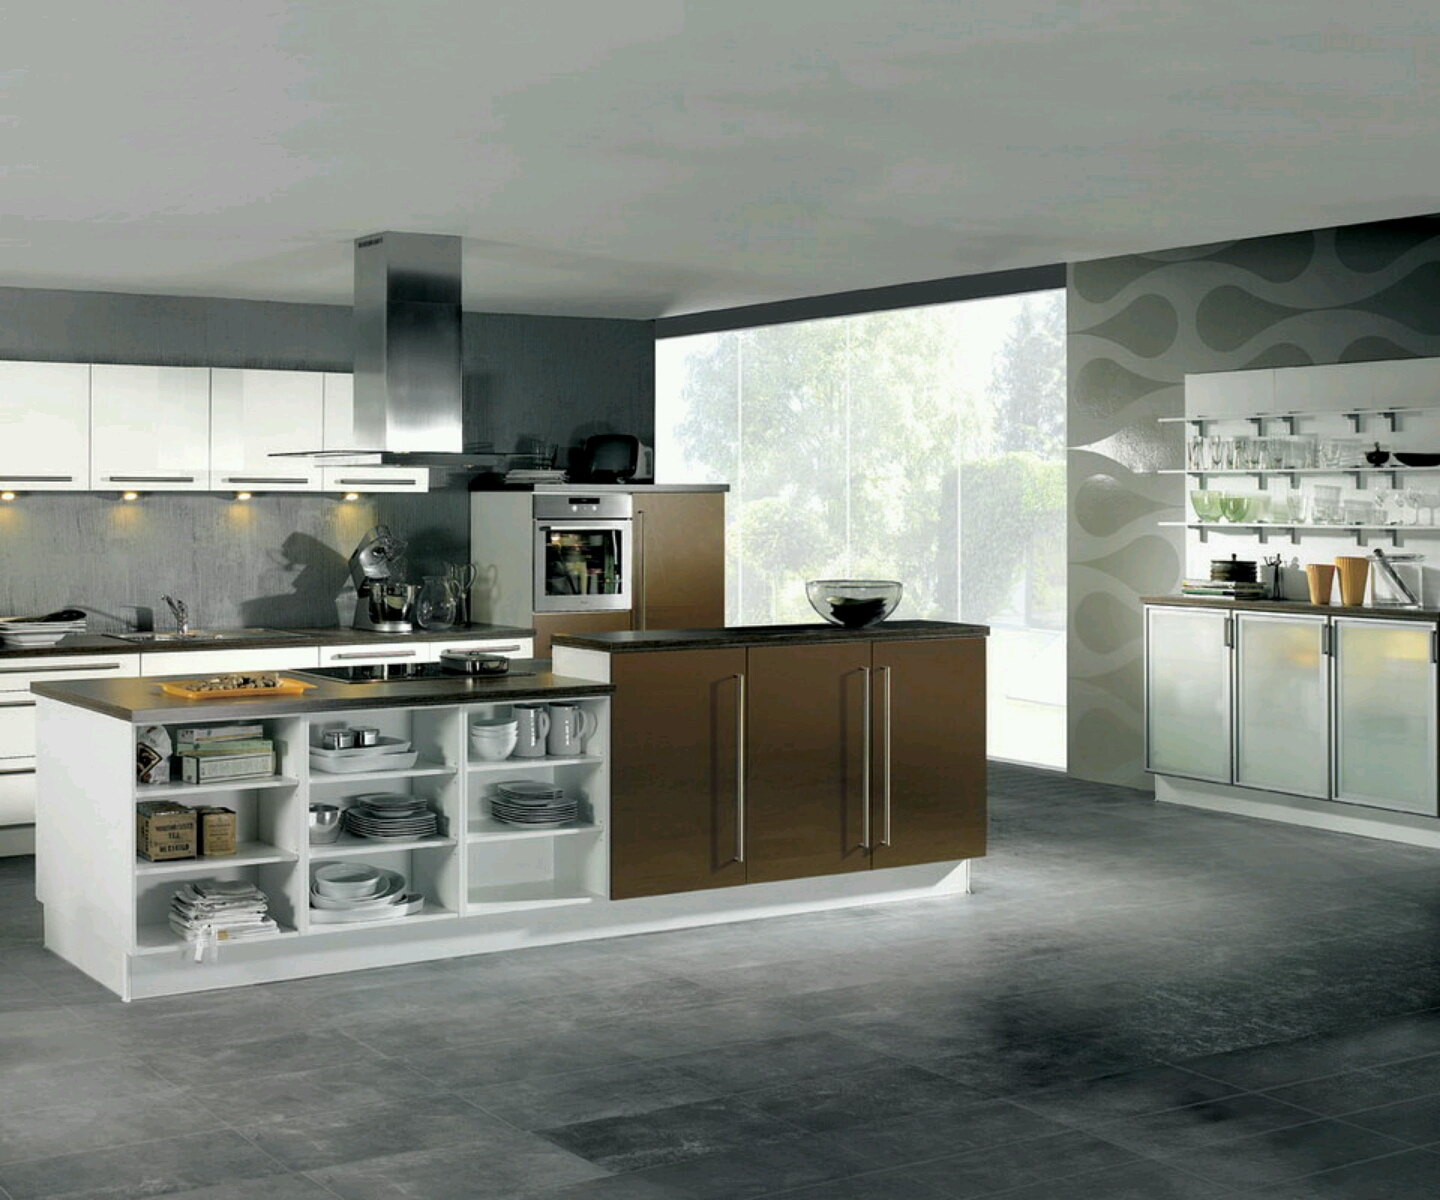 New home designs latest ultra modern kitchen designs ideas for New kitchen designs images